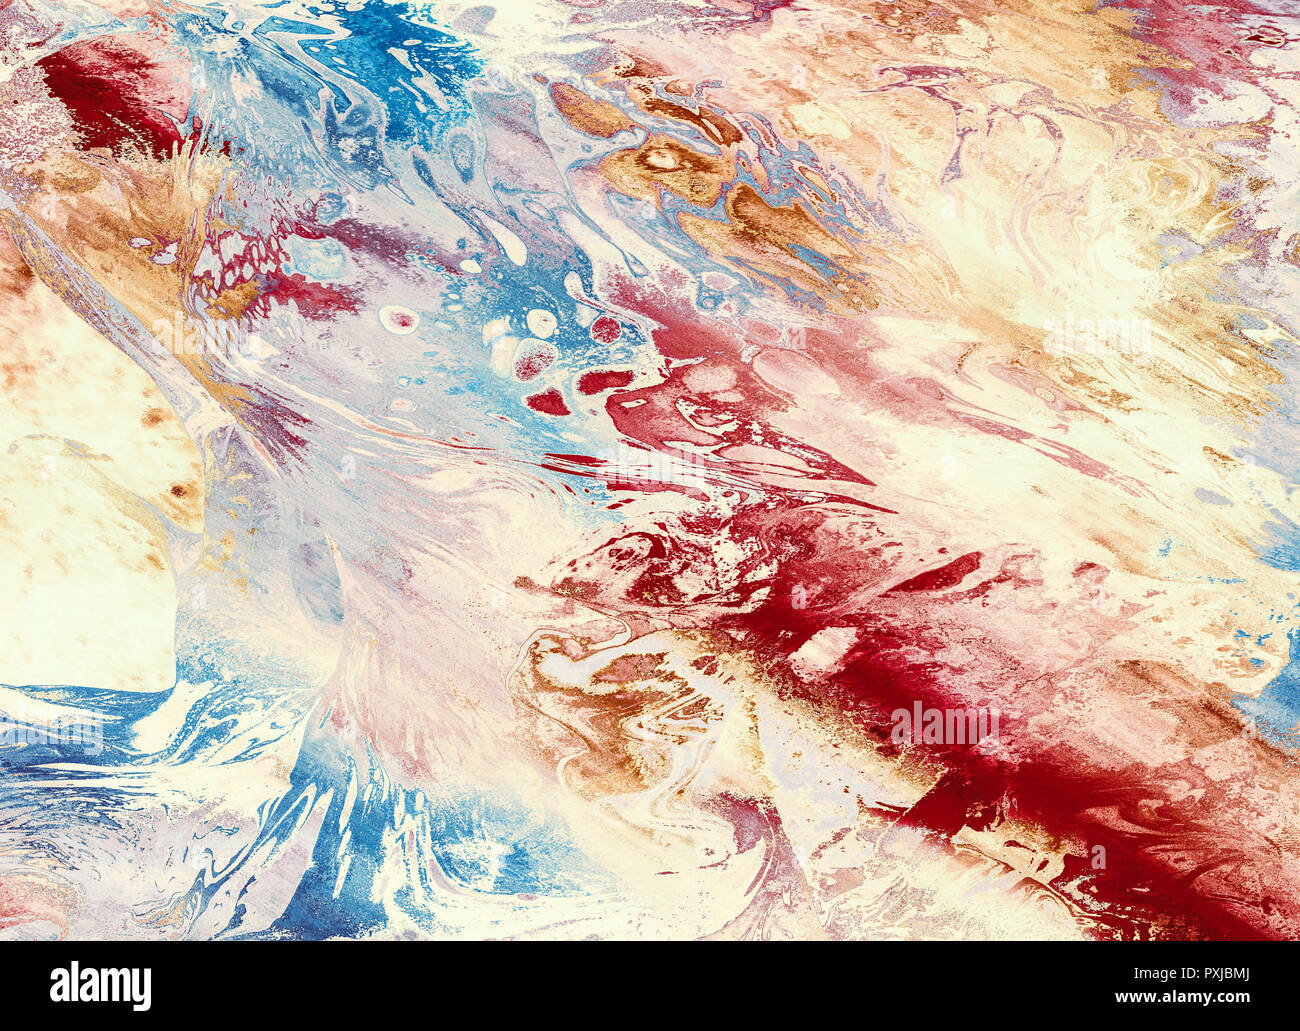 Colorful abstract background, wallpaper and rich, bright, texture with space for text. Liquid acrylic mixed color brushstroke. Underwater fantasy worl - Stock Image